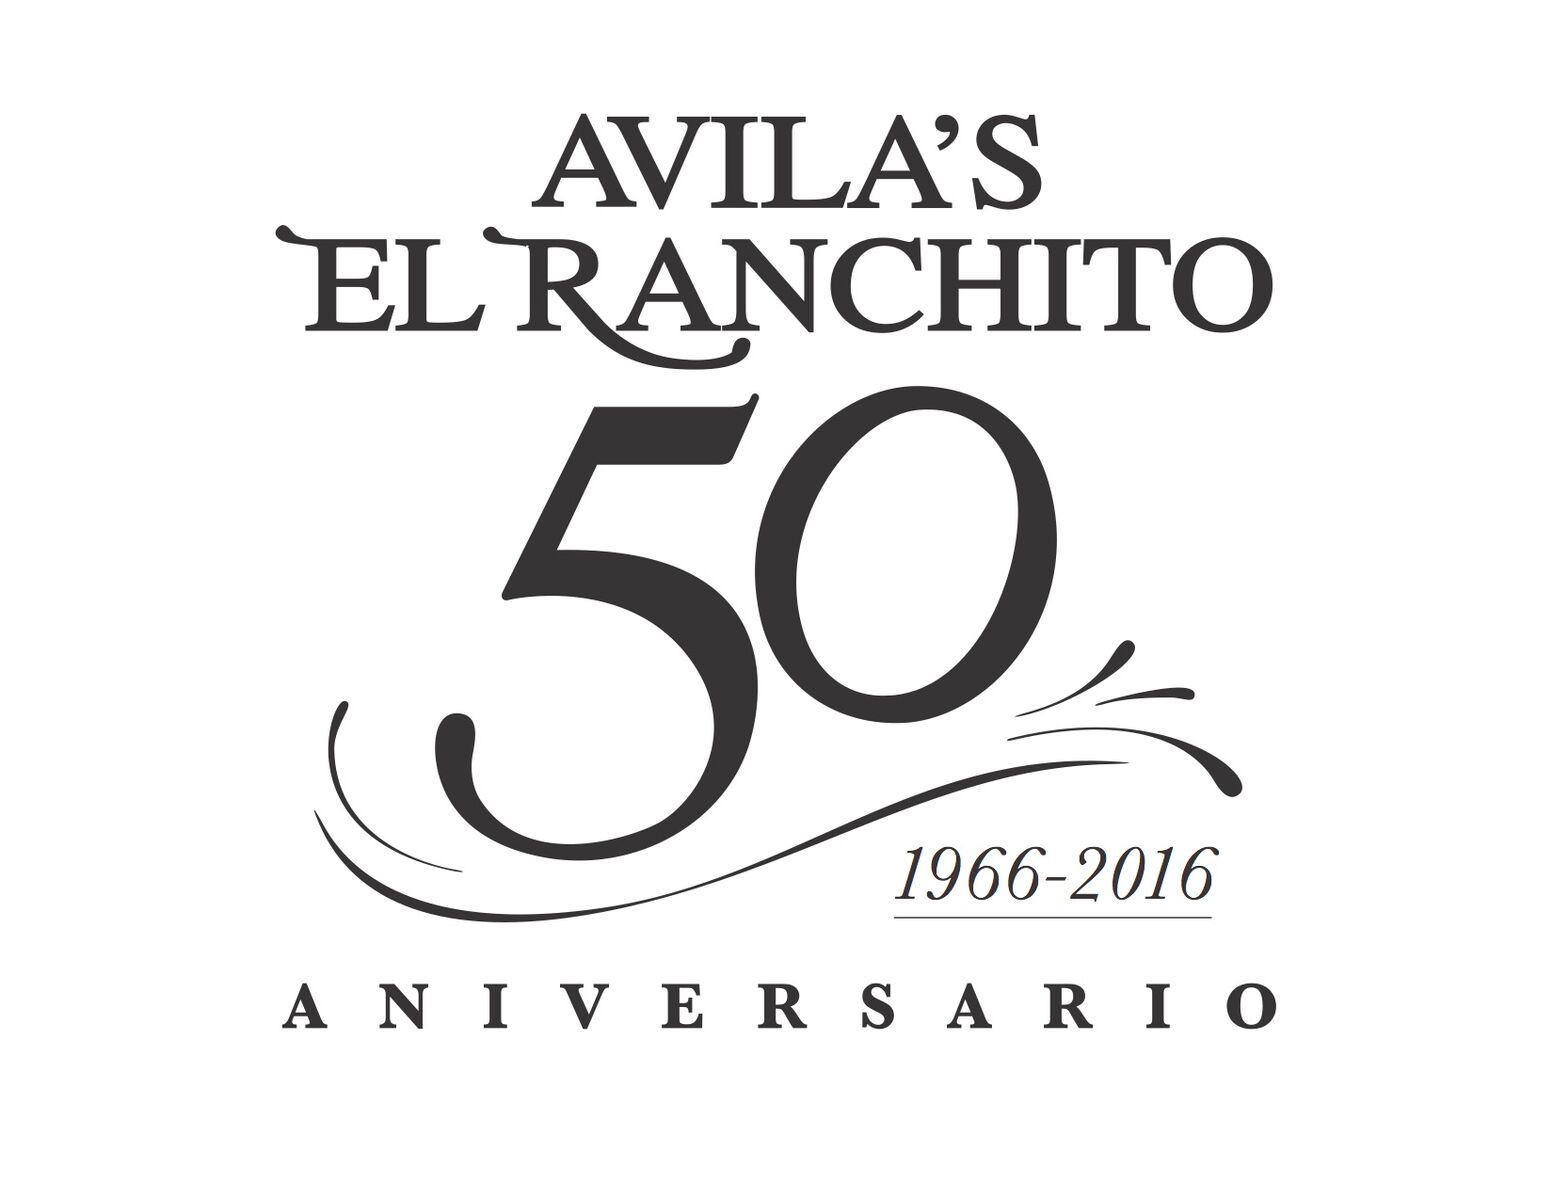 Avila's El Ranchito logo